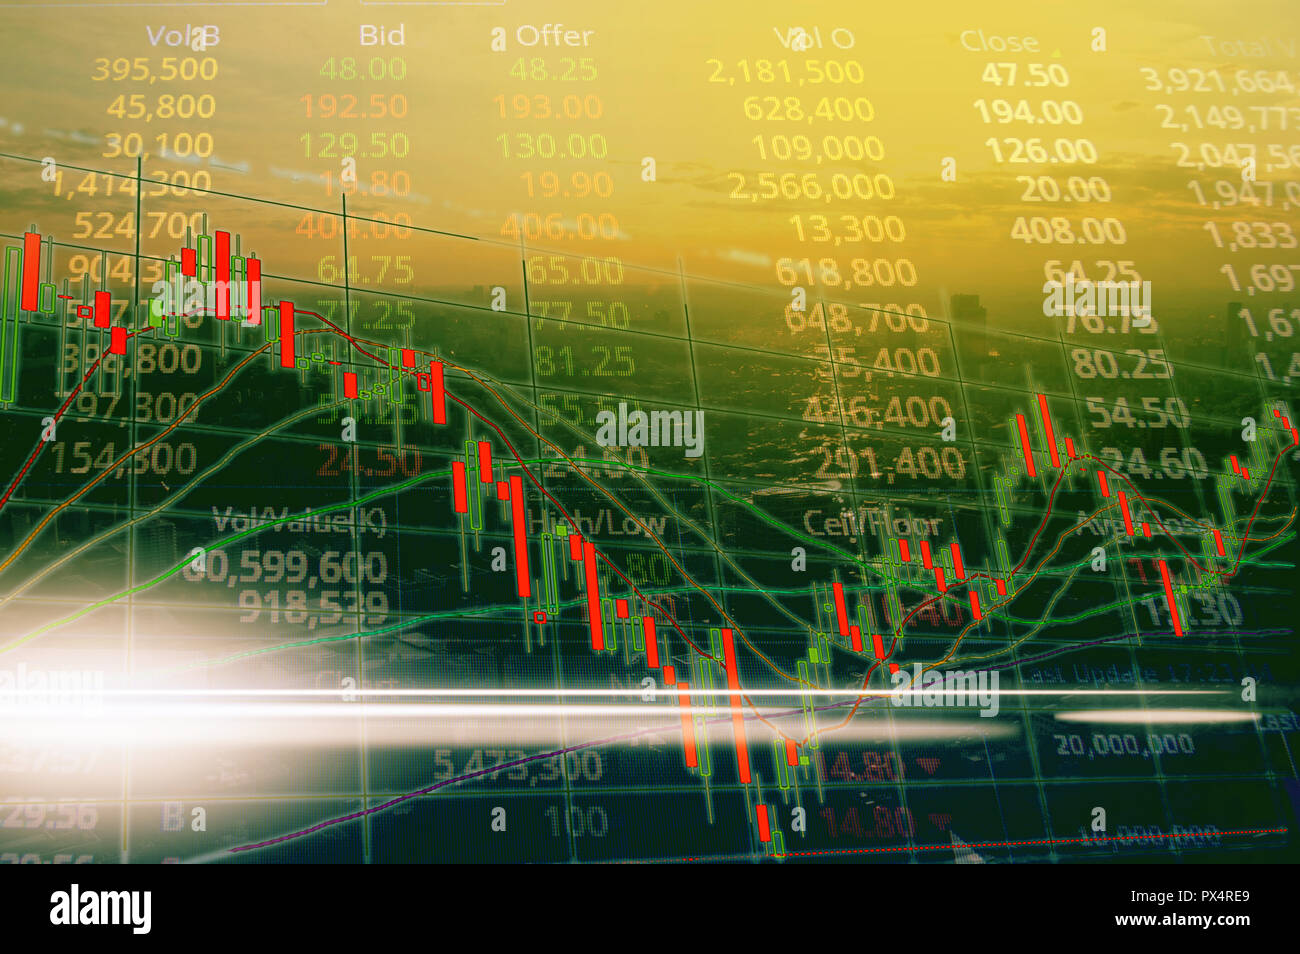 Stock market or trading graph and candlestick chart. Abstract finance background. Financial investment concept. Stock Photo